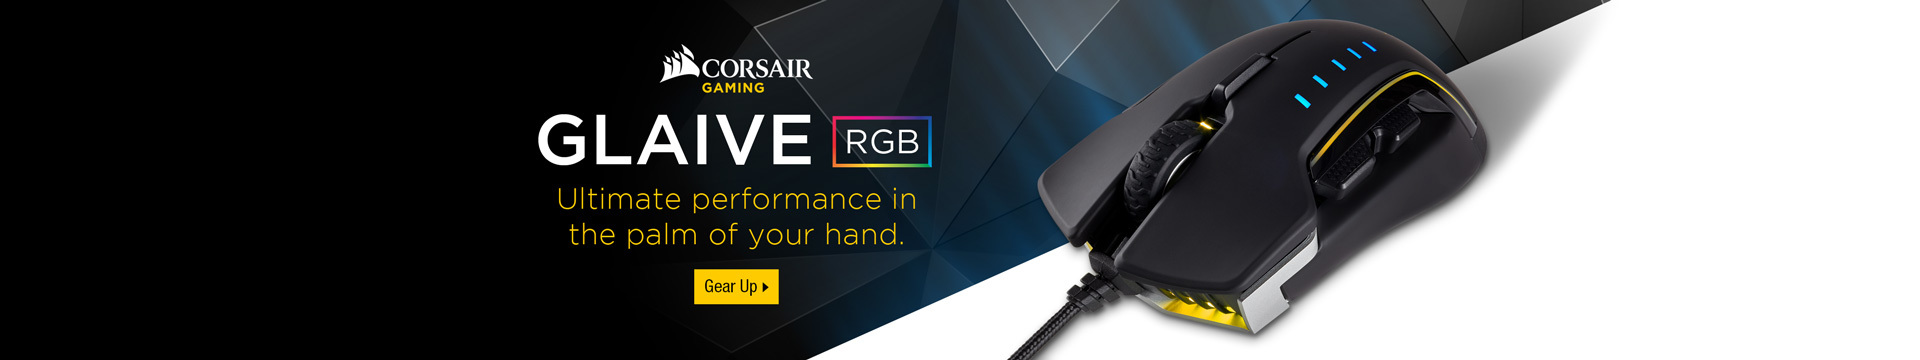 GLAIVE RGB Ultimate performance in the palm of your hand.